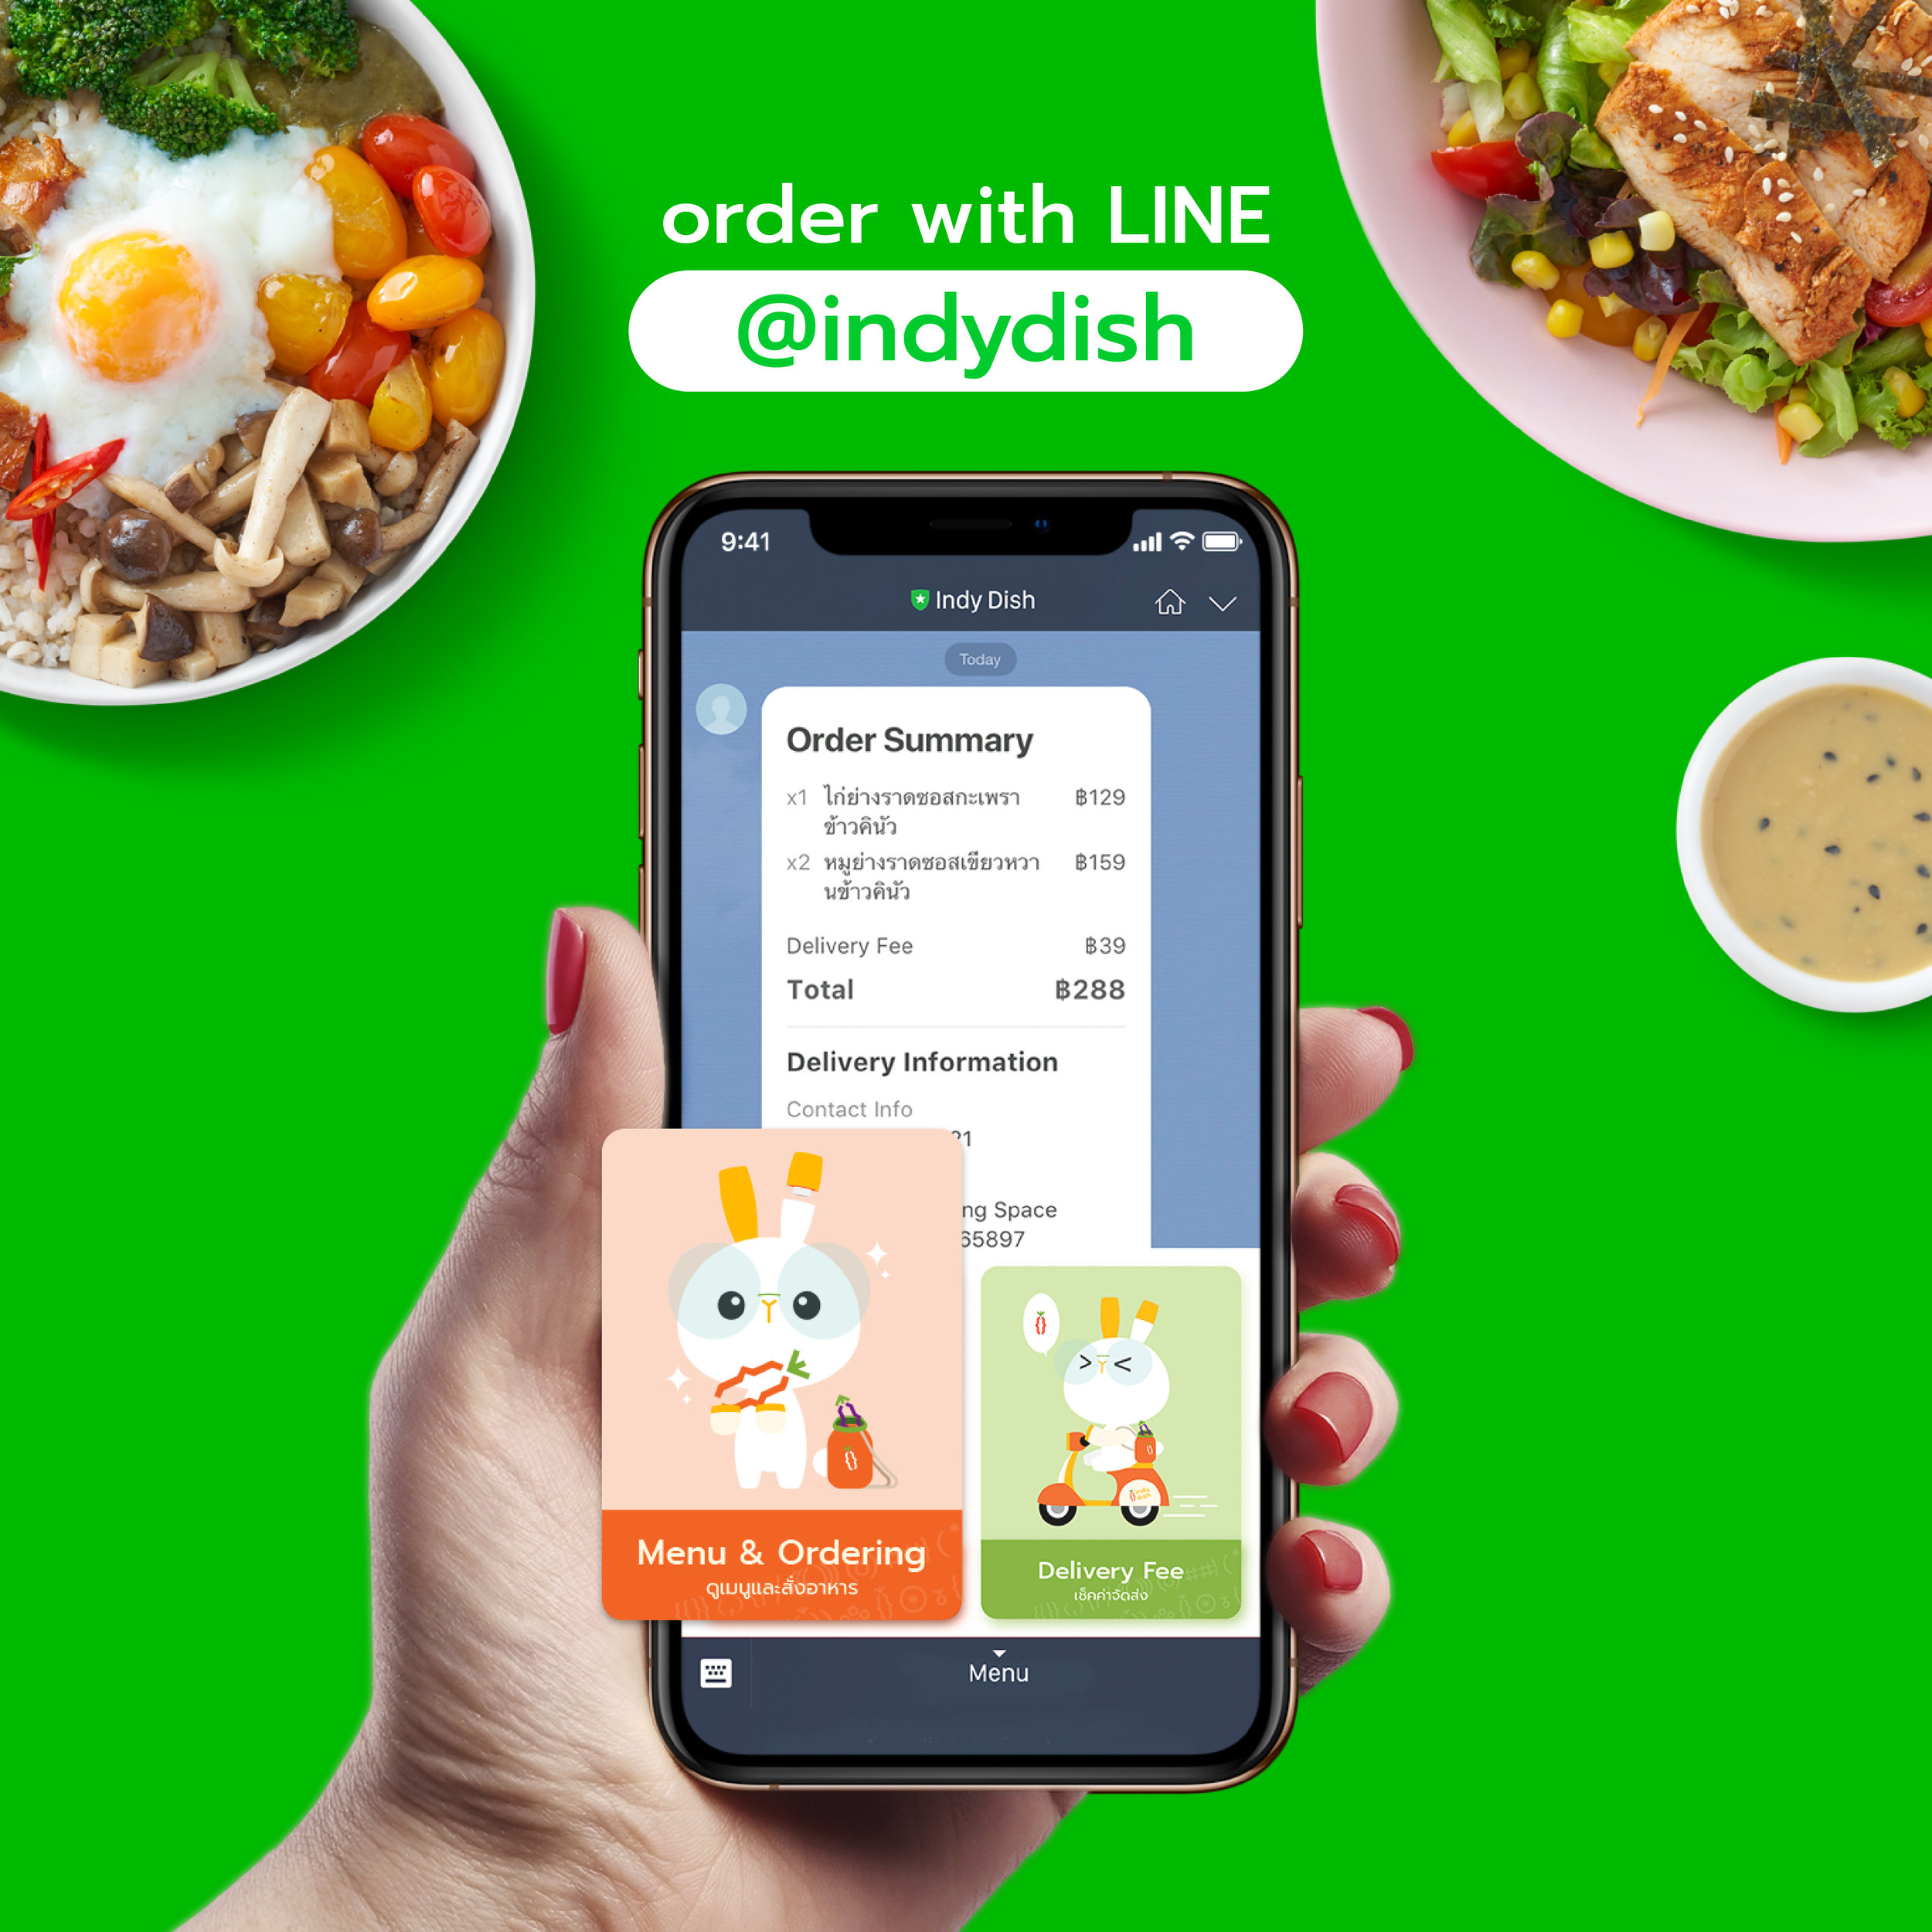 Simple ordering through.LINE - Enjoy super easy ordering through our line interface. Pay with cash, credit card, or prompt pay